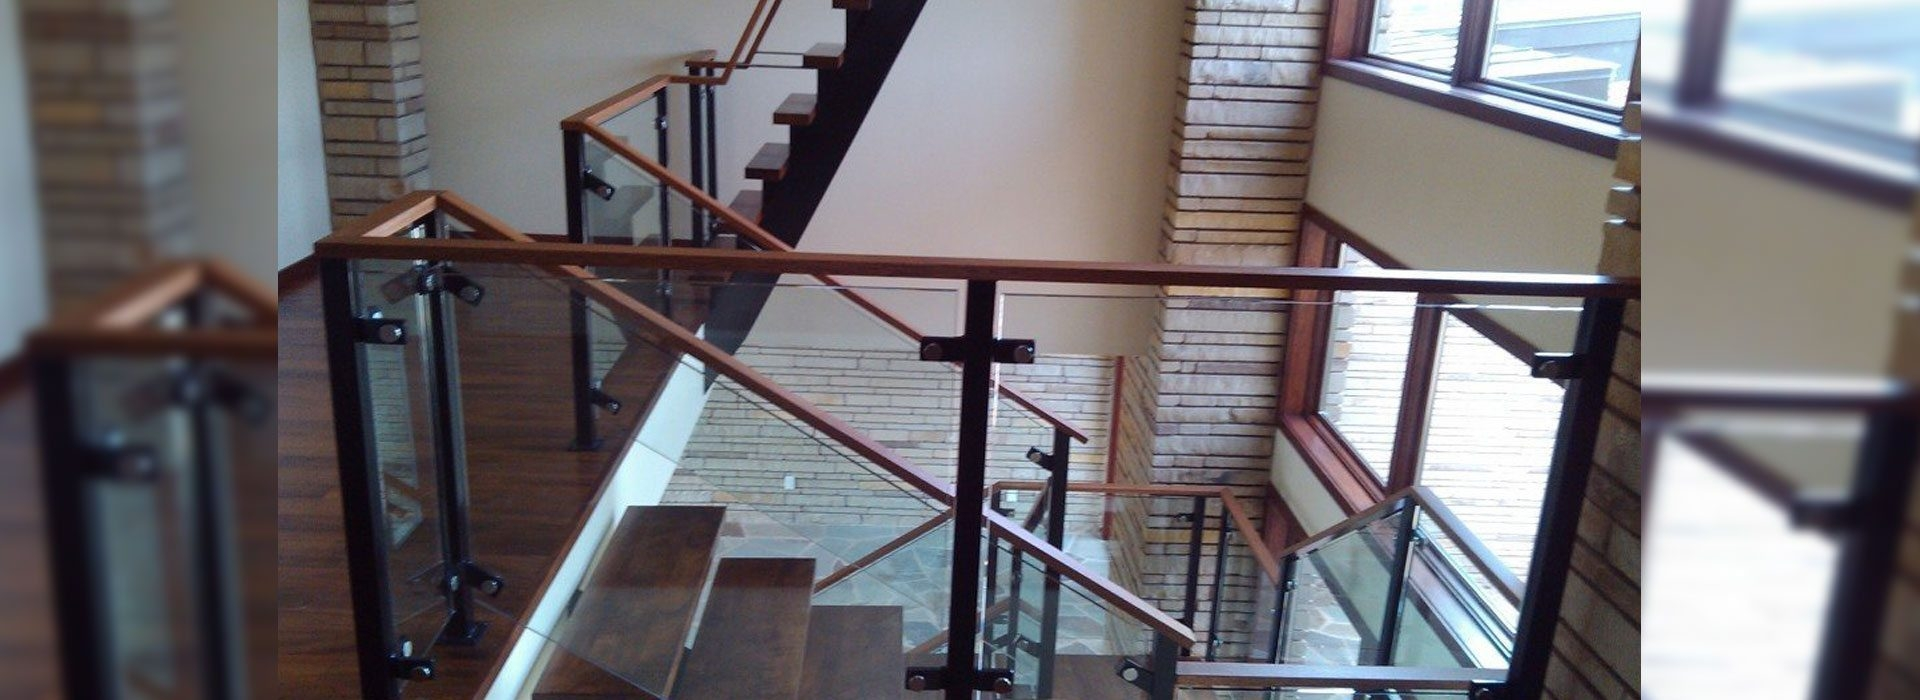 Glass Handrails Commercial Products Anchor Ventana Glass   Glass Banister Near Me   Frameless Glass   Curved Staircase   Glass Panels   Modern Staircase Design   Toughened Glass